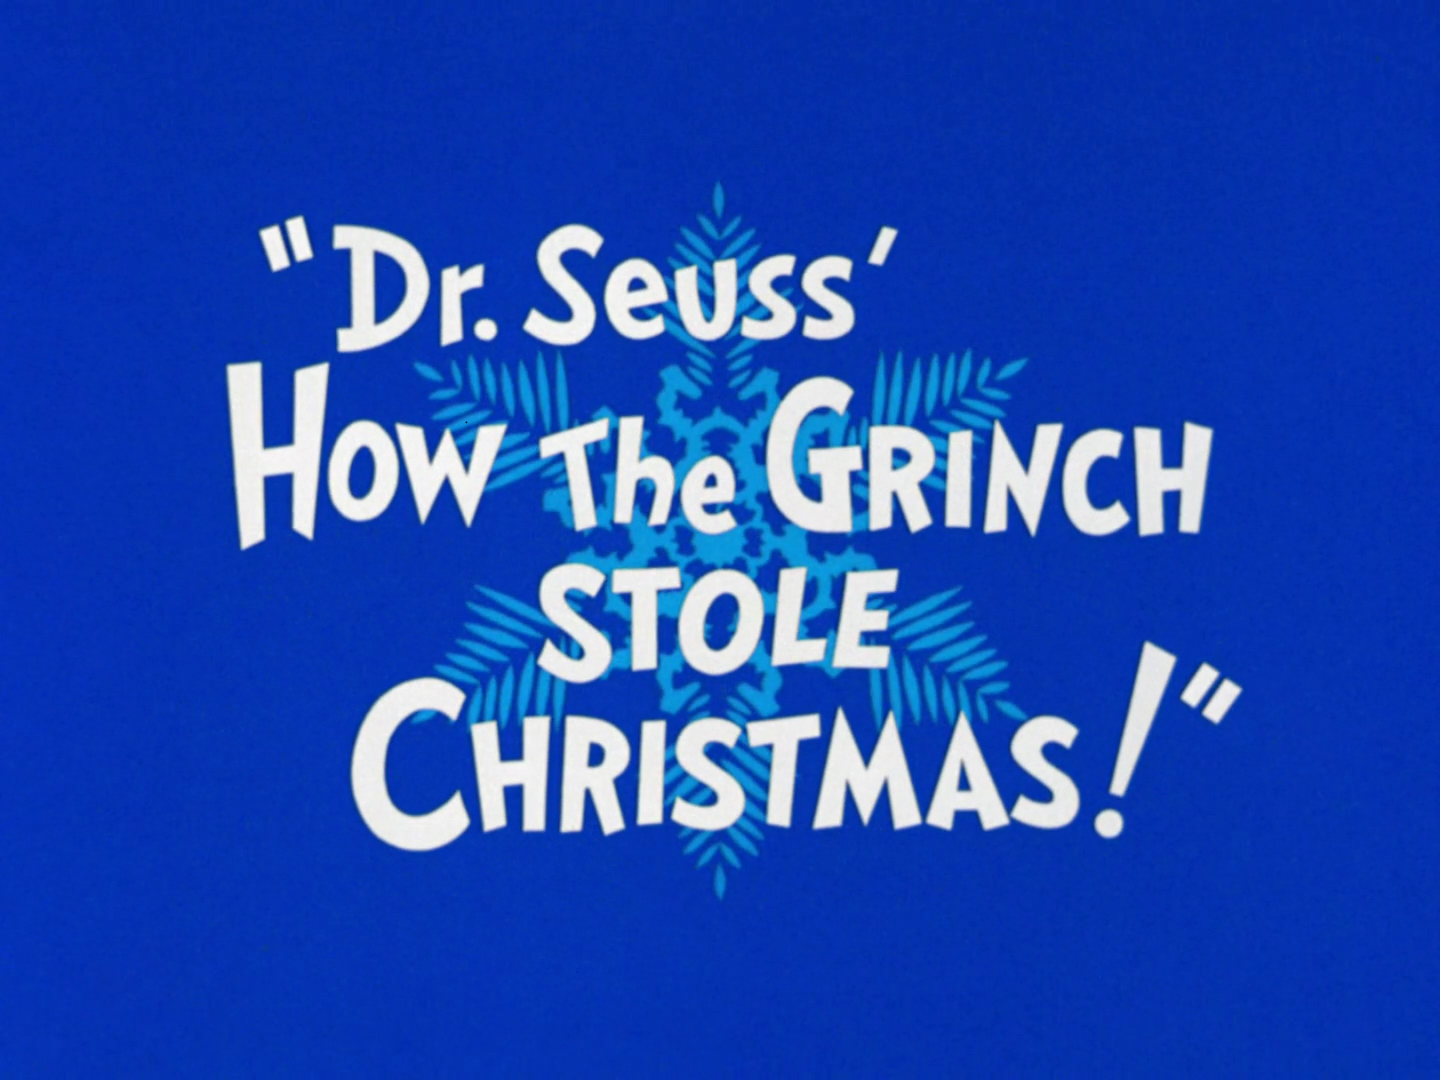 How the Grinch Stole Christmas! (1966) | Christmas Specials Wiki